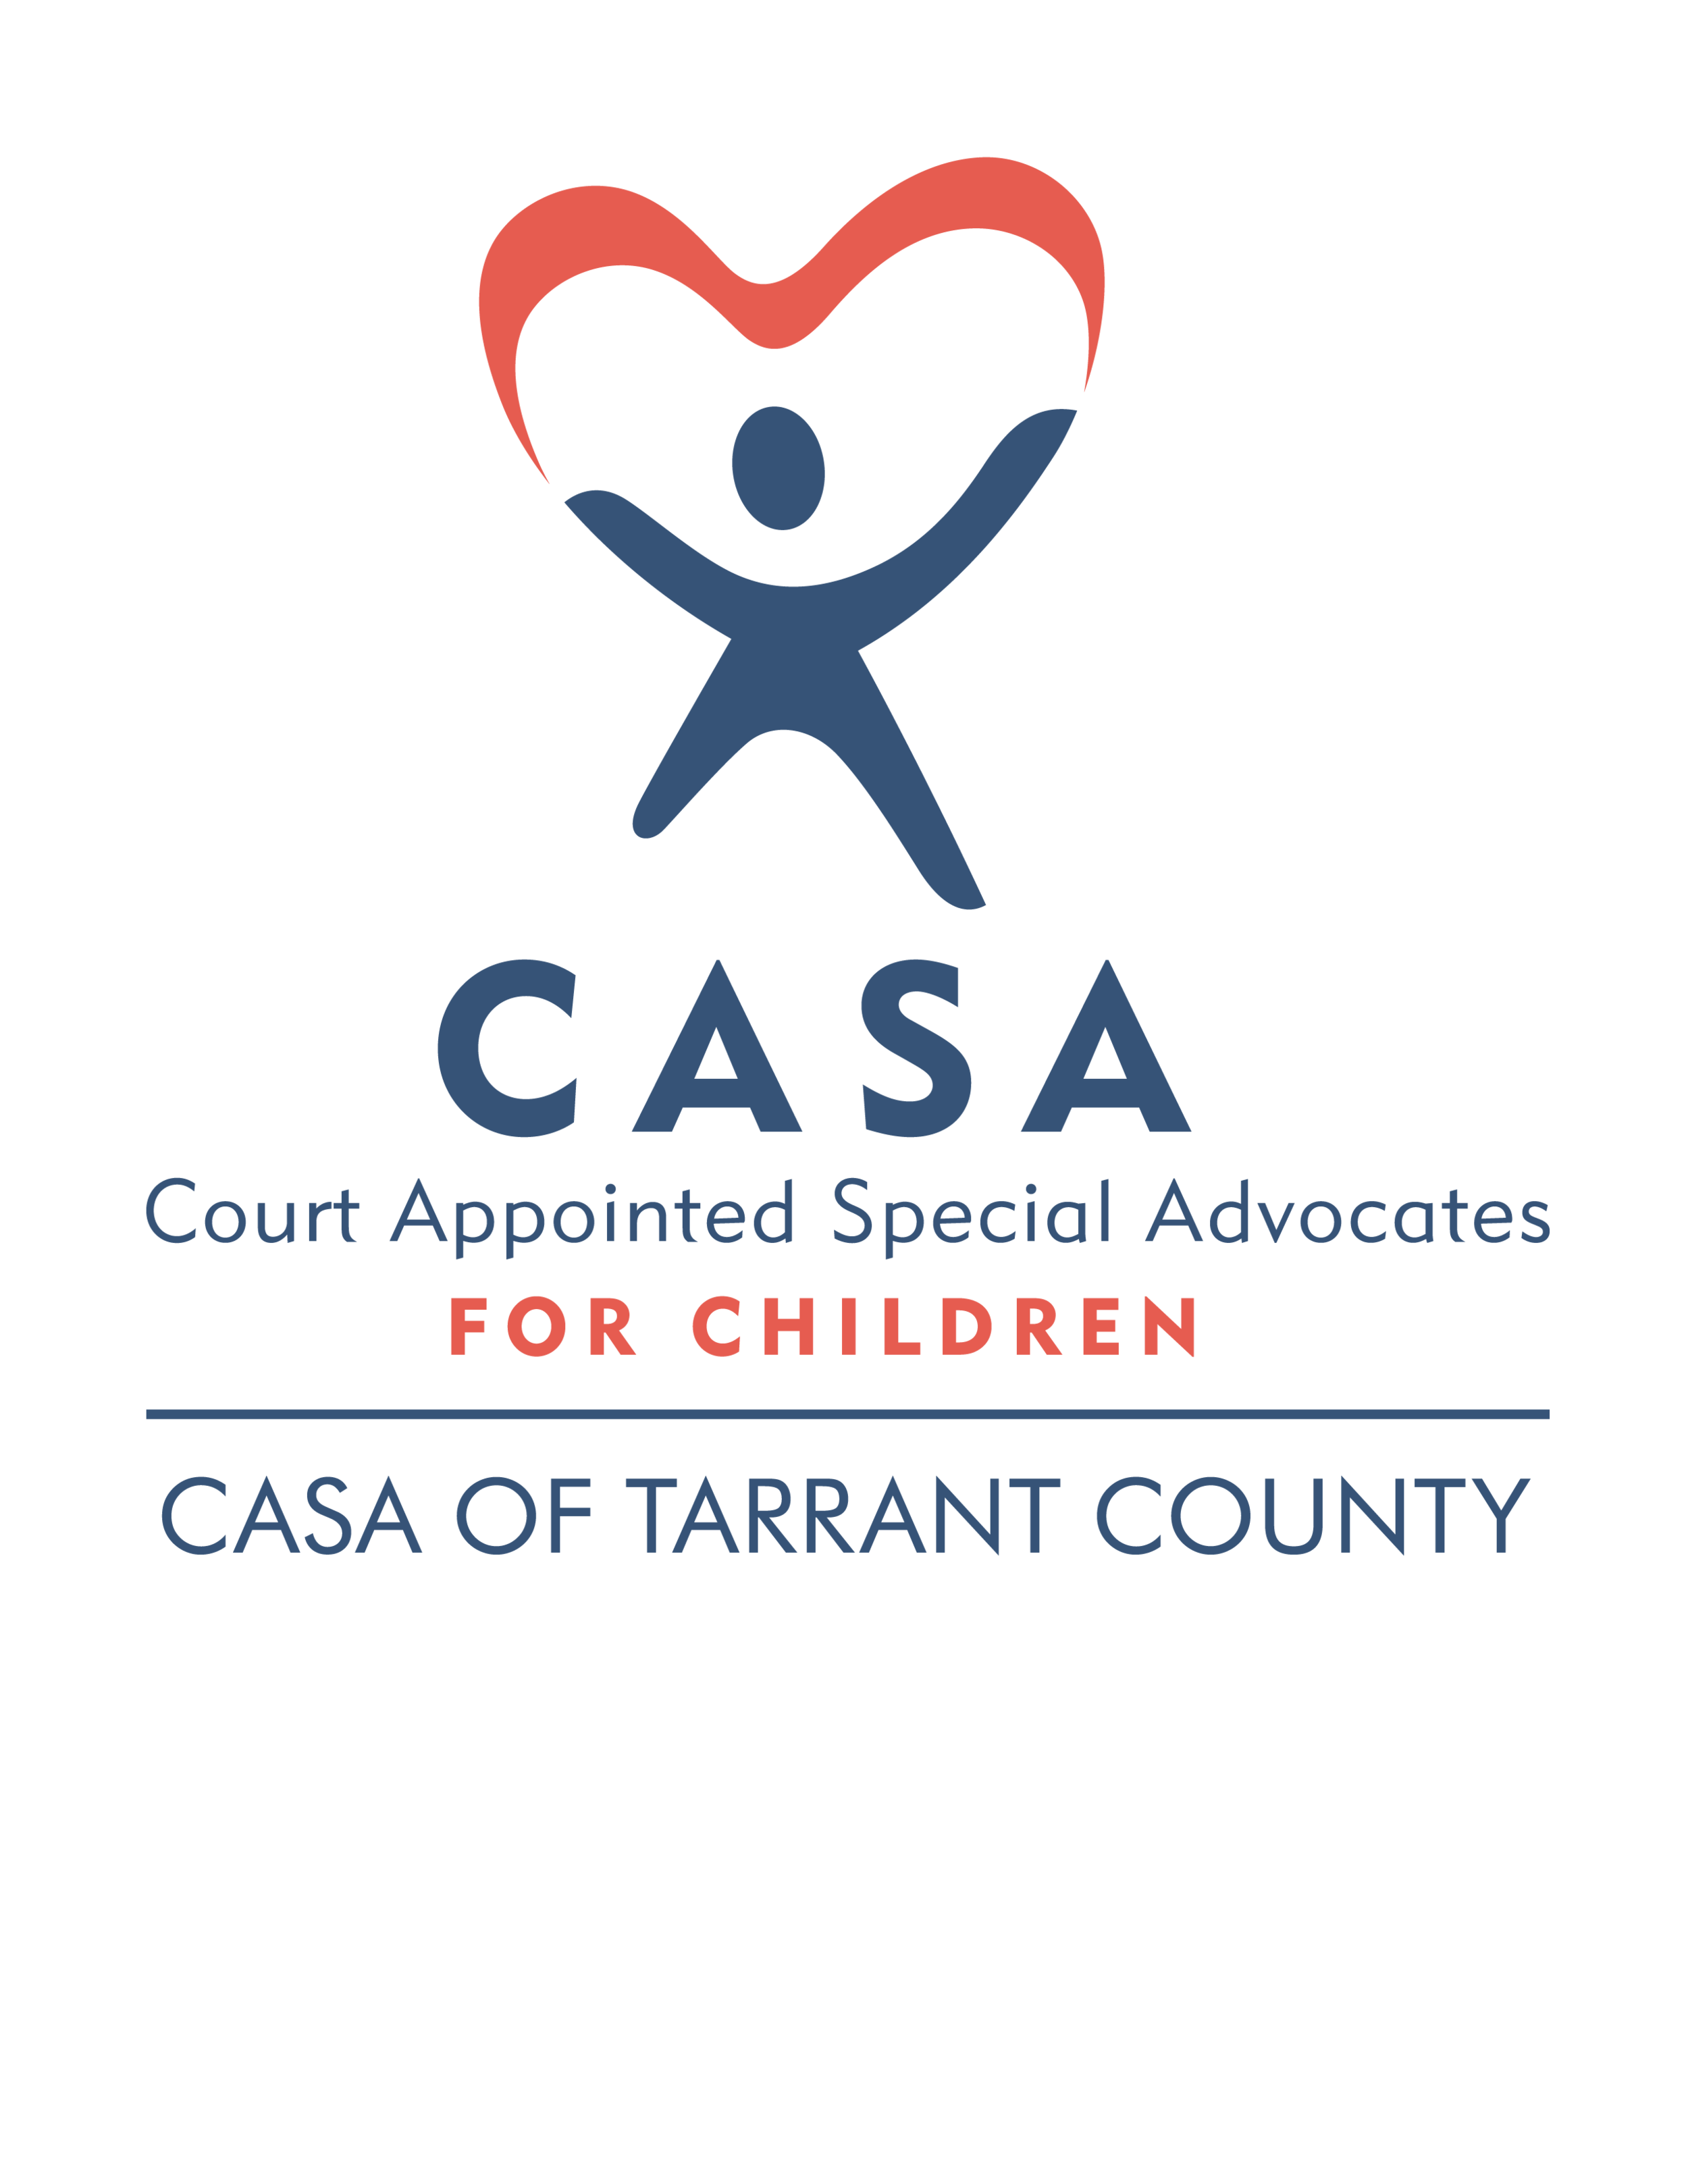 CASA_Logo_Newcolors-01.png